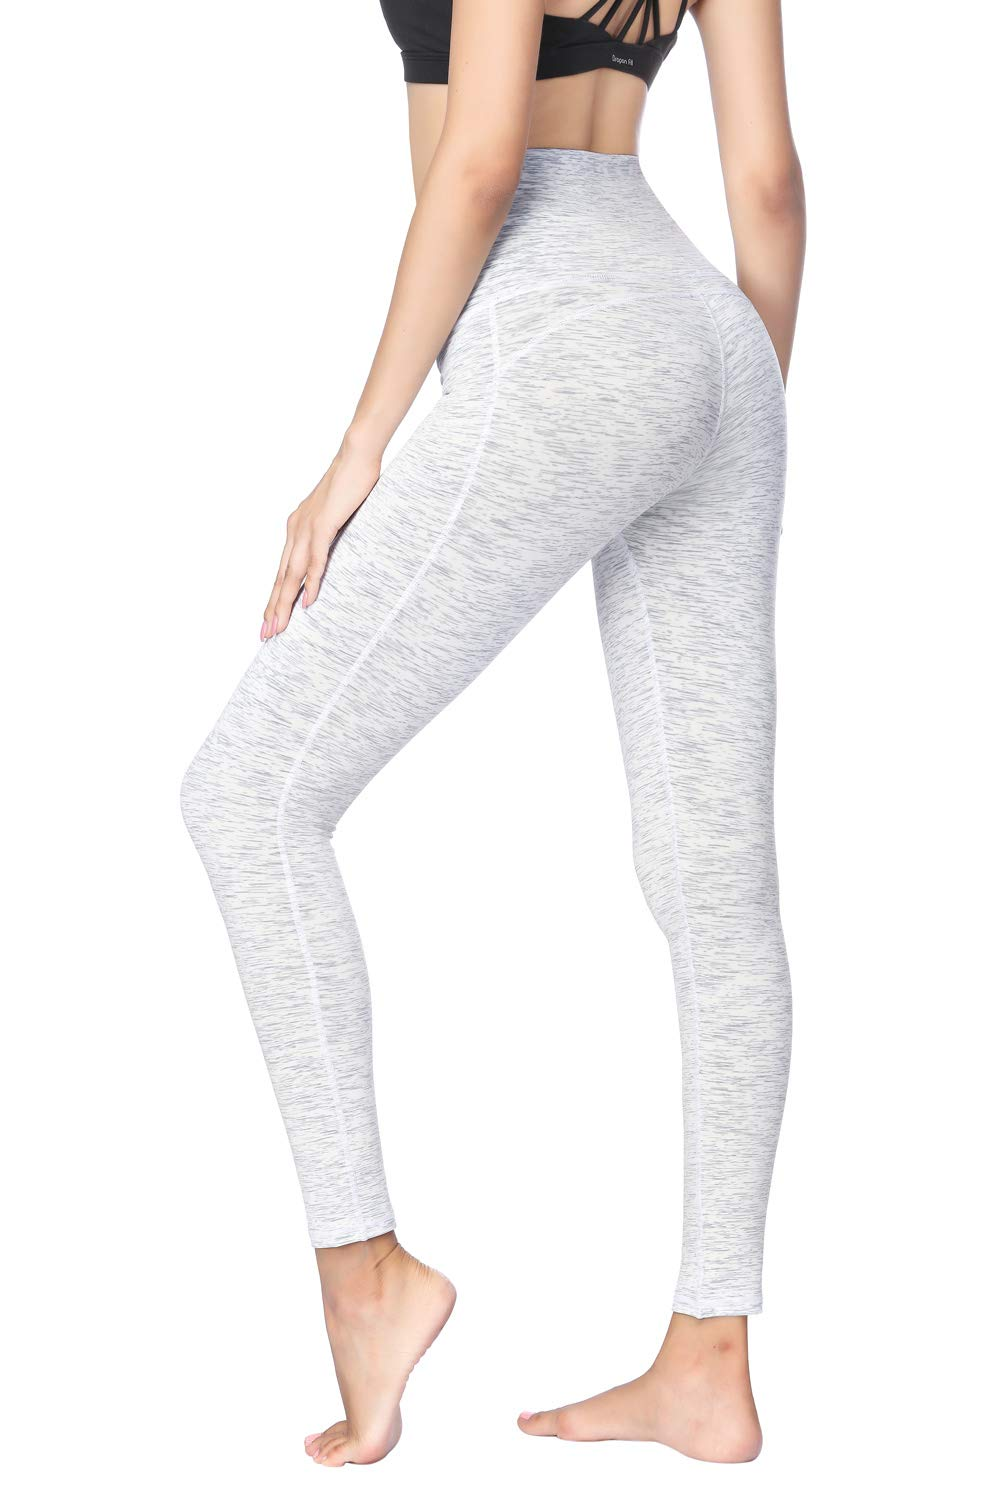 Dragon Fit Compression Yoga Pants Power Stretch Workout Leggings High Waist Tummy Control (Small, Ankle-Space dye White)